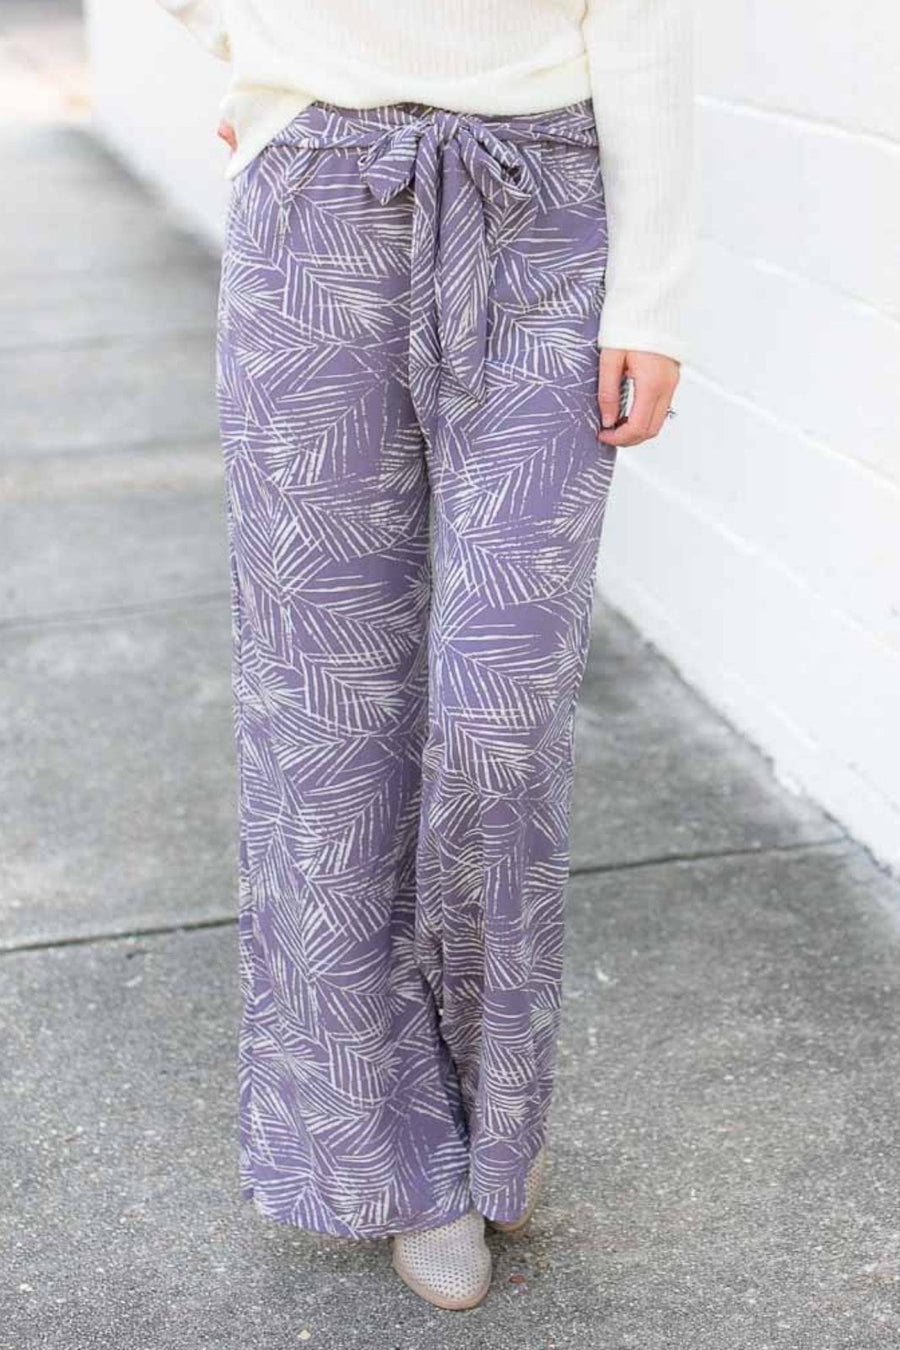 Bottoms You Know It Can't Wait Palm Print Pants - Lotus Boutique